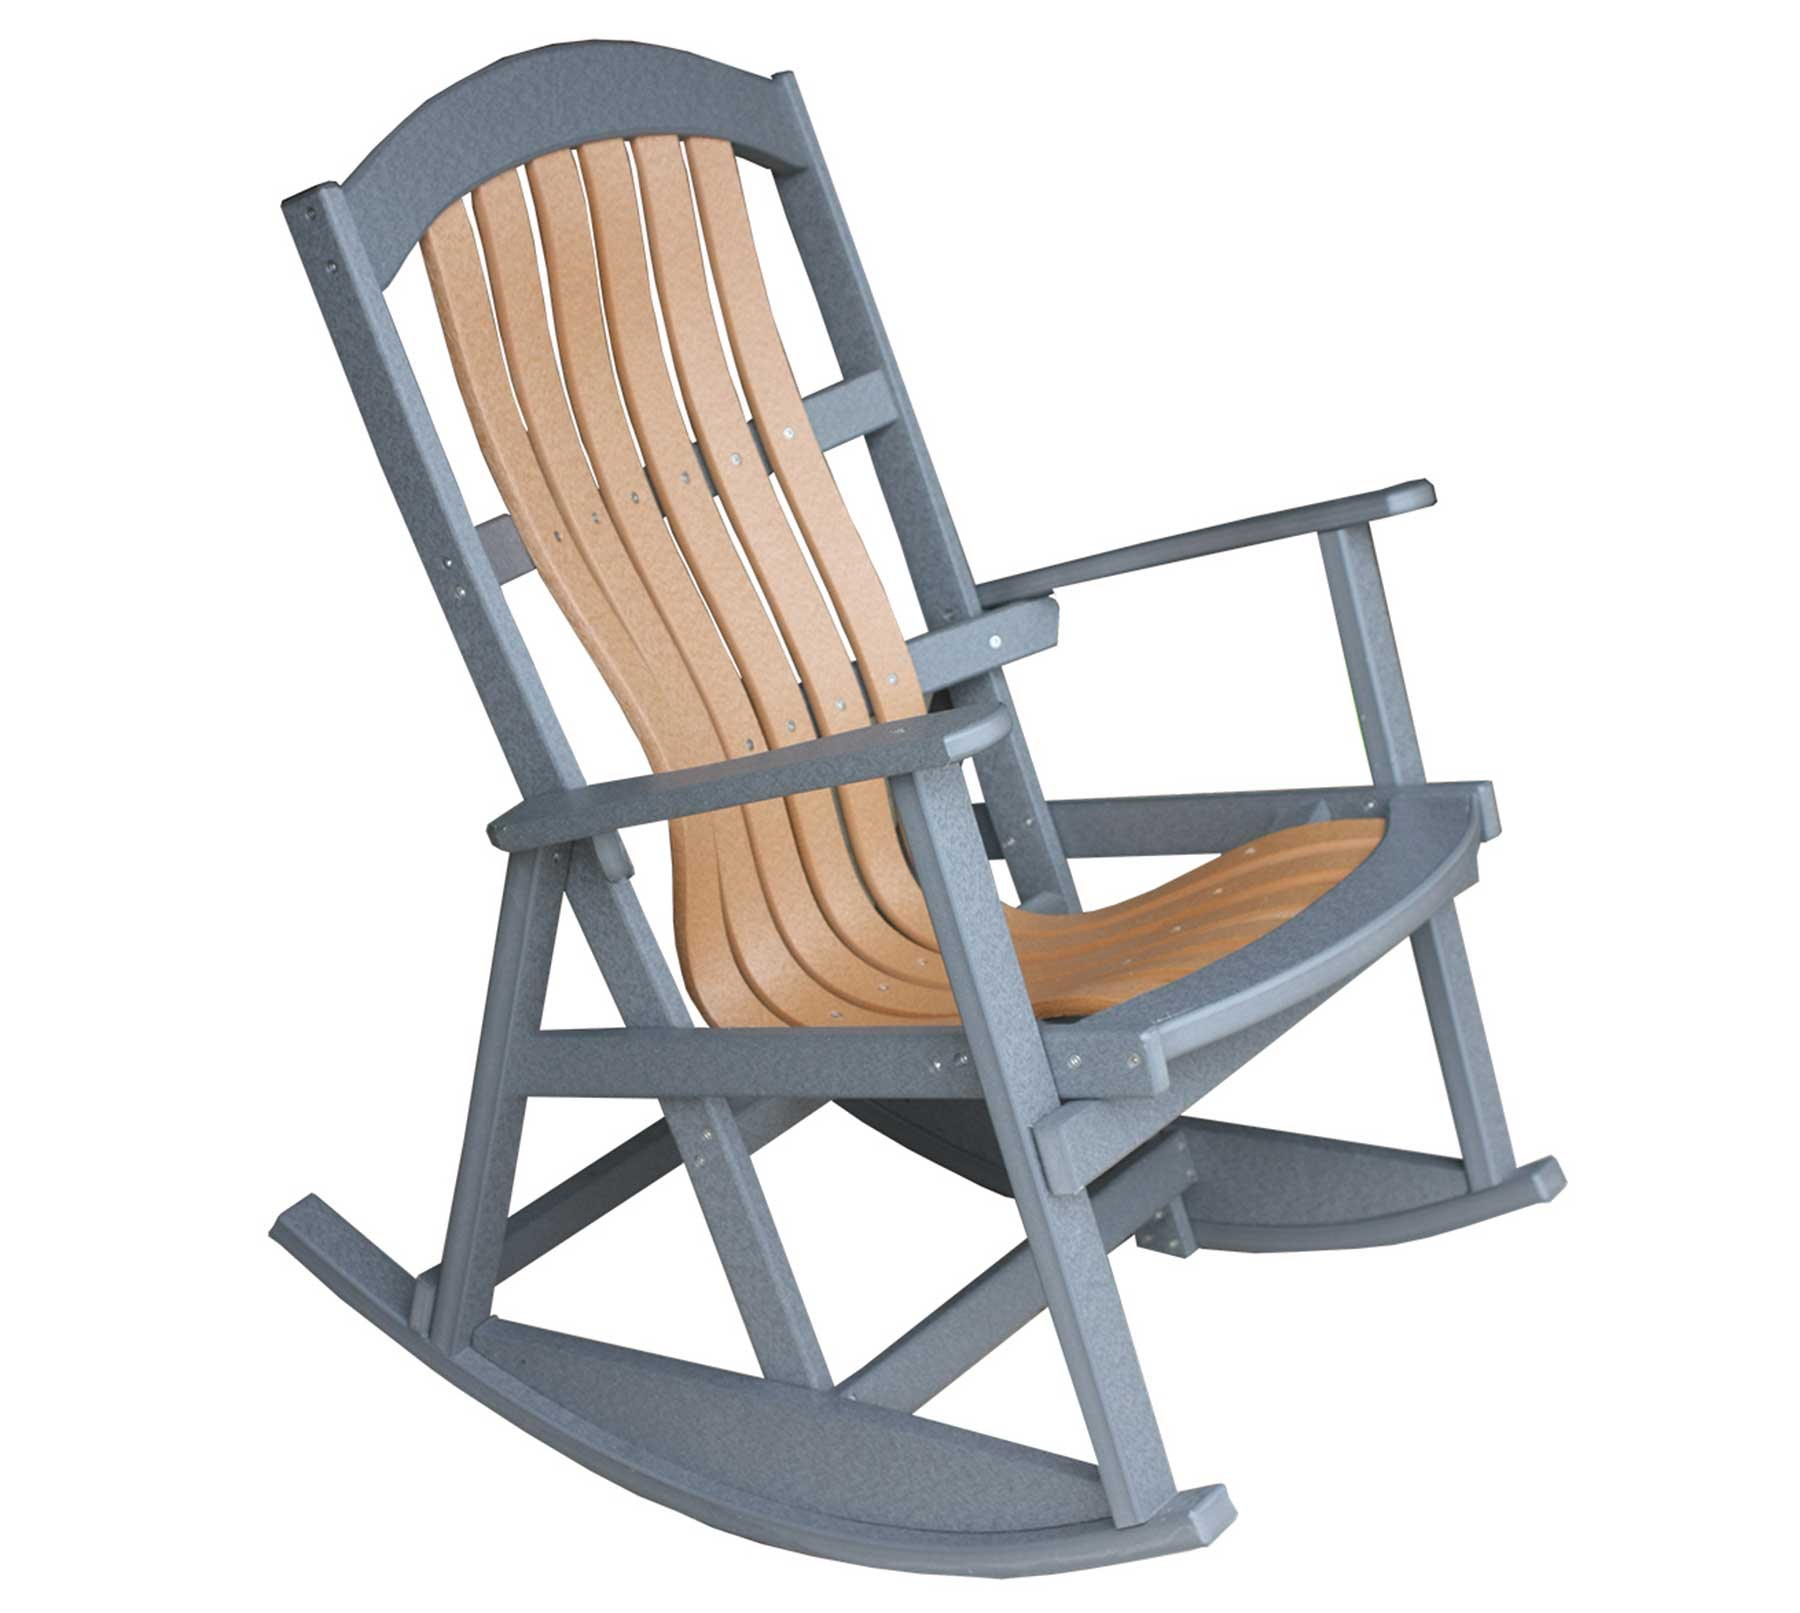 The Cottage Lite Rocker From Signature Fine Furnishings